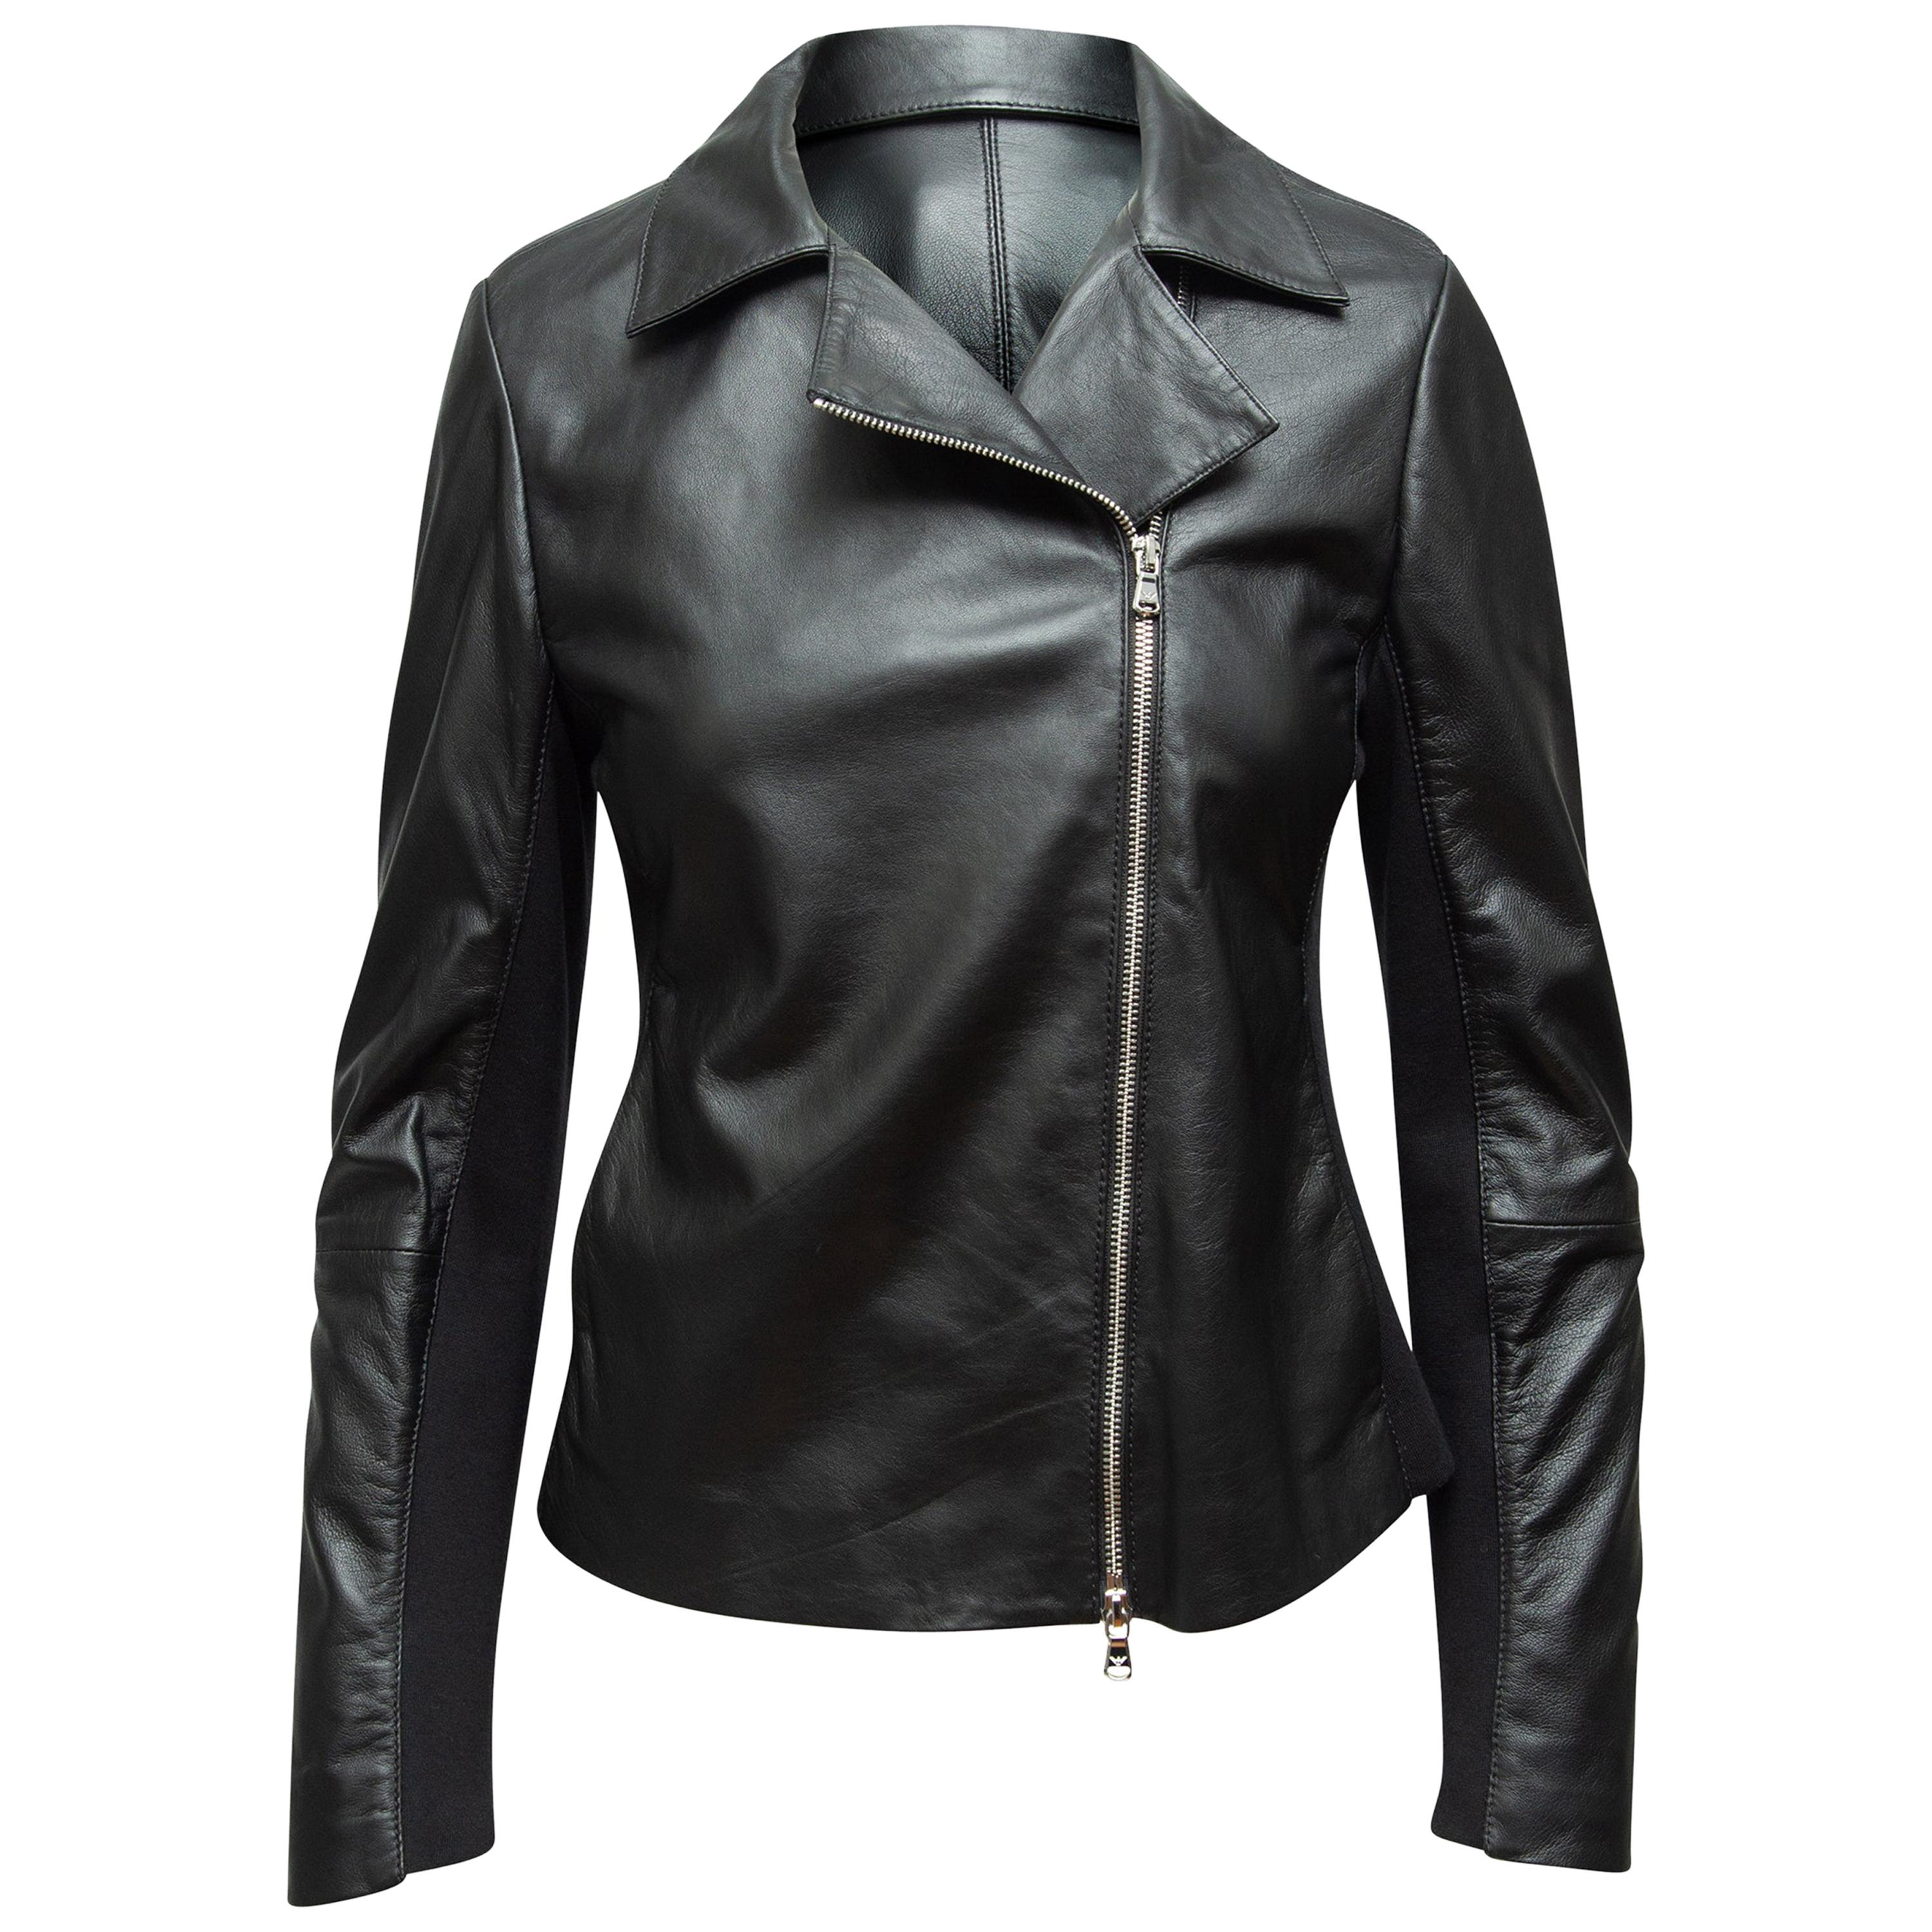 Emporio Armani Black Leather Moto Jacket